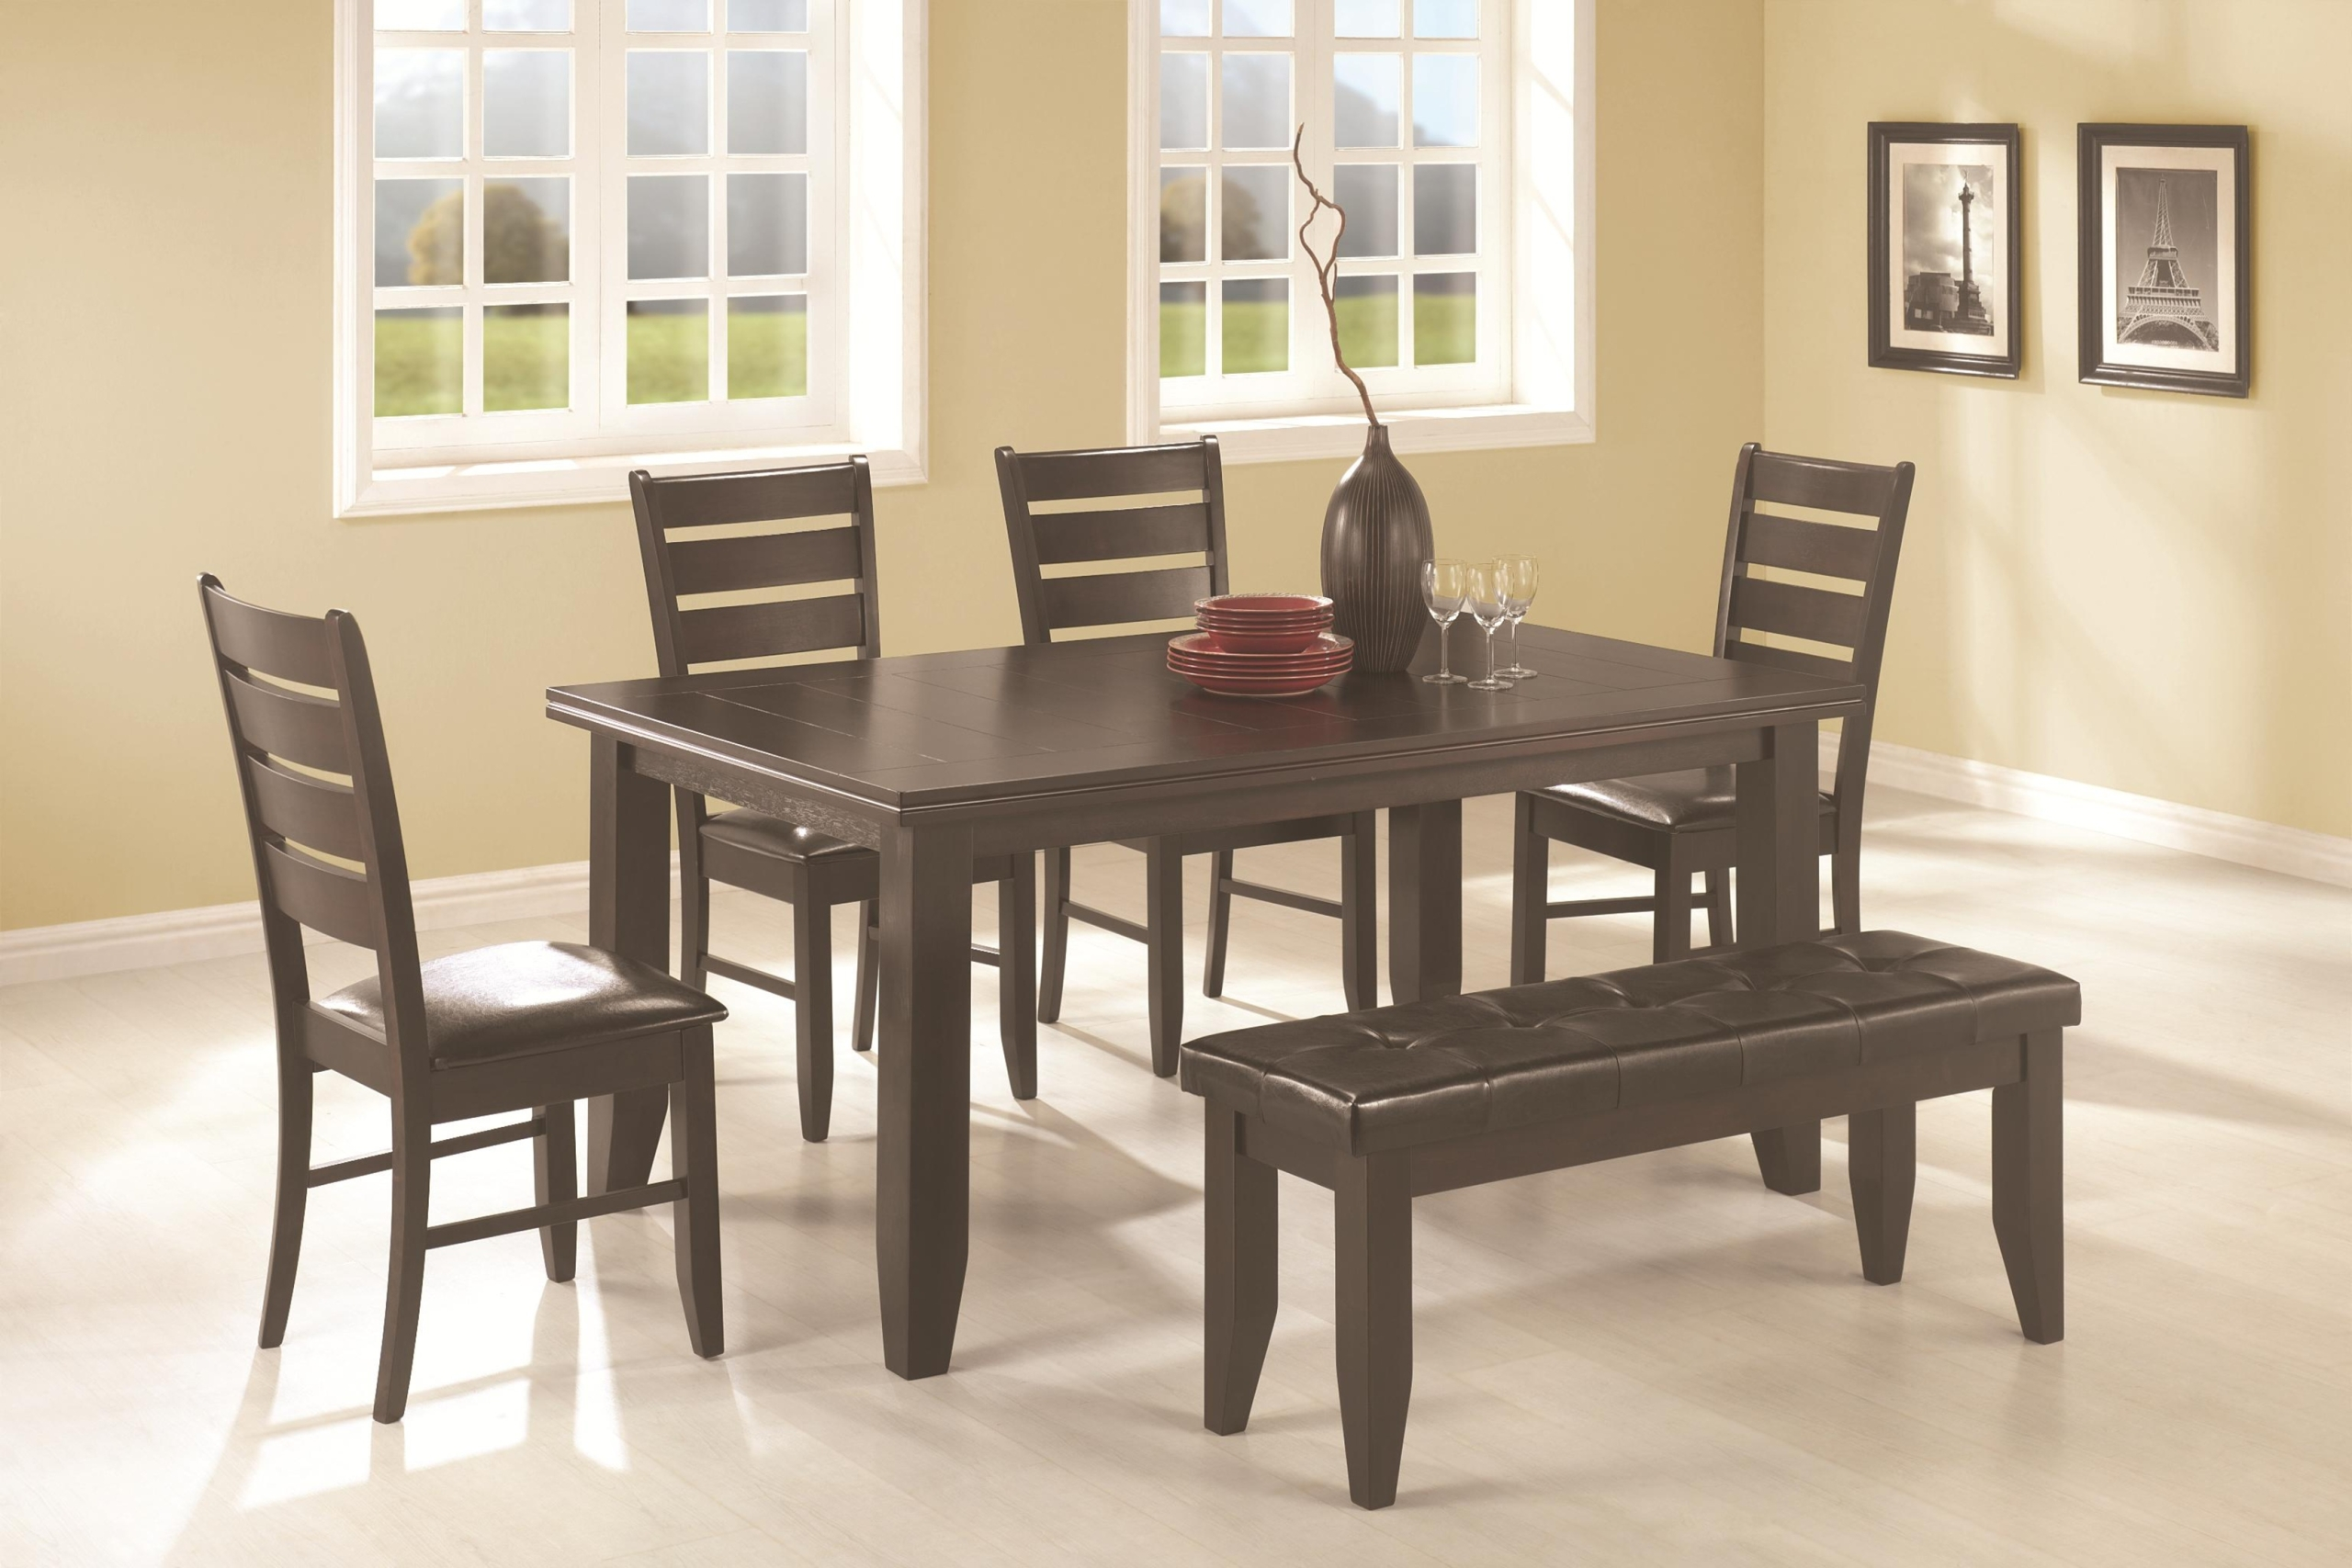 dining set with bench and chairs walmart shower chair table visual hunt